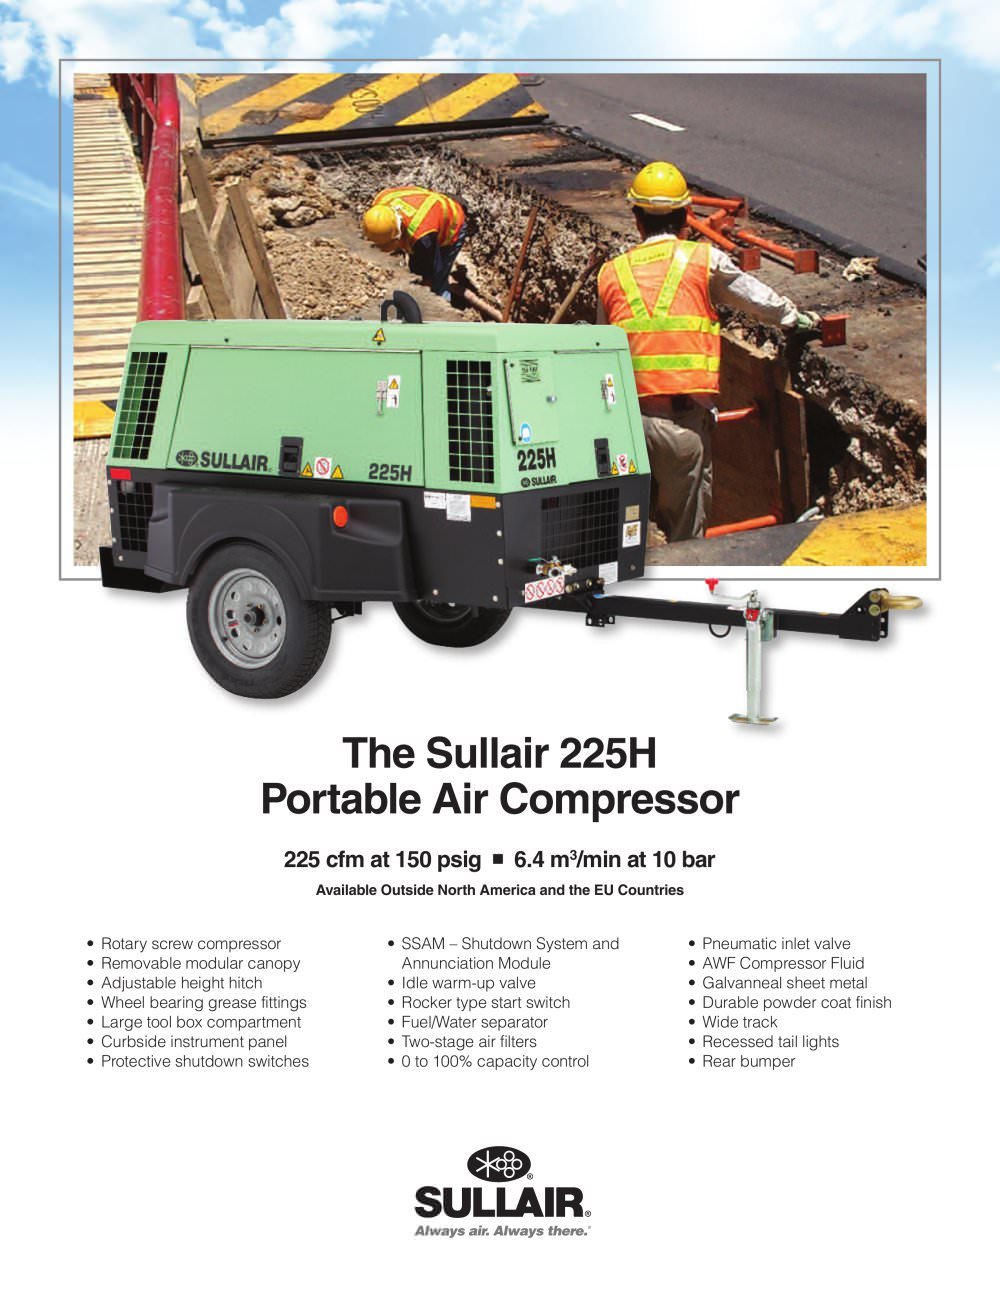 The Sullair 225H Portable Air Compressor - 1 / 2 Pages